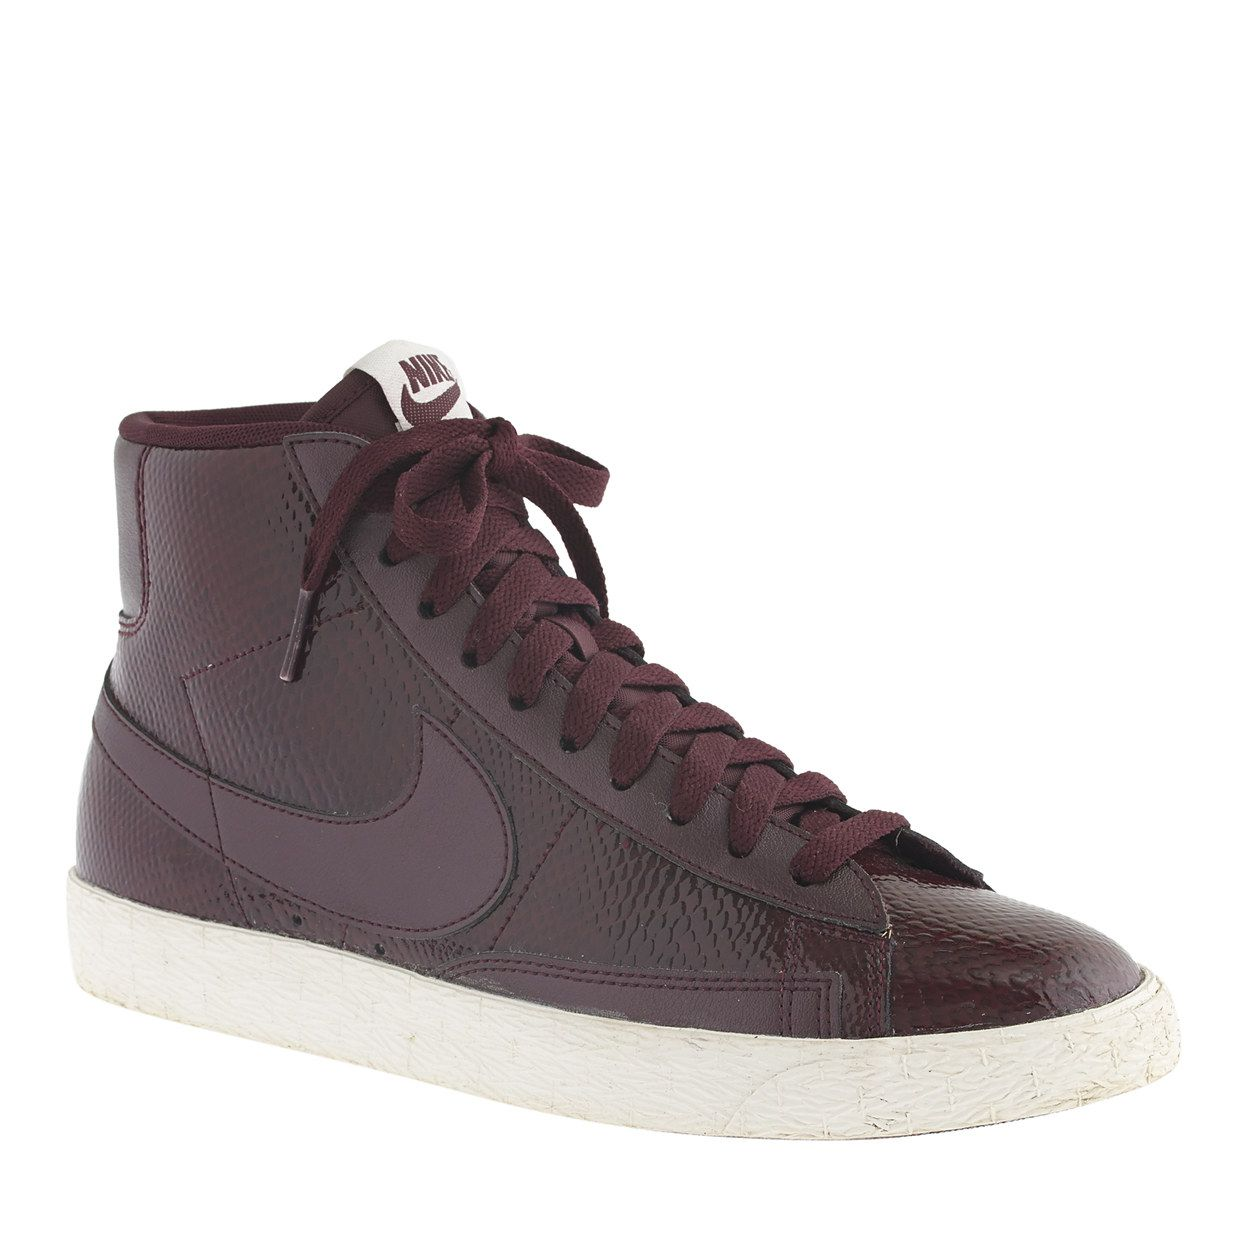 best website 7a1b8 9add1 Women s Nike® Blazer mid vintage sneakers   Nike   J.Crew